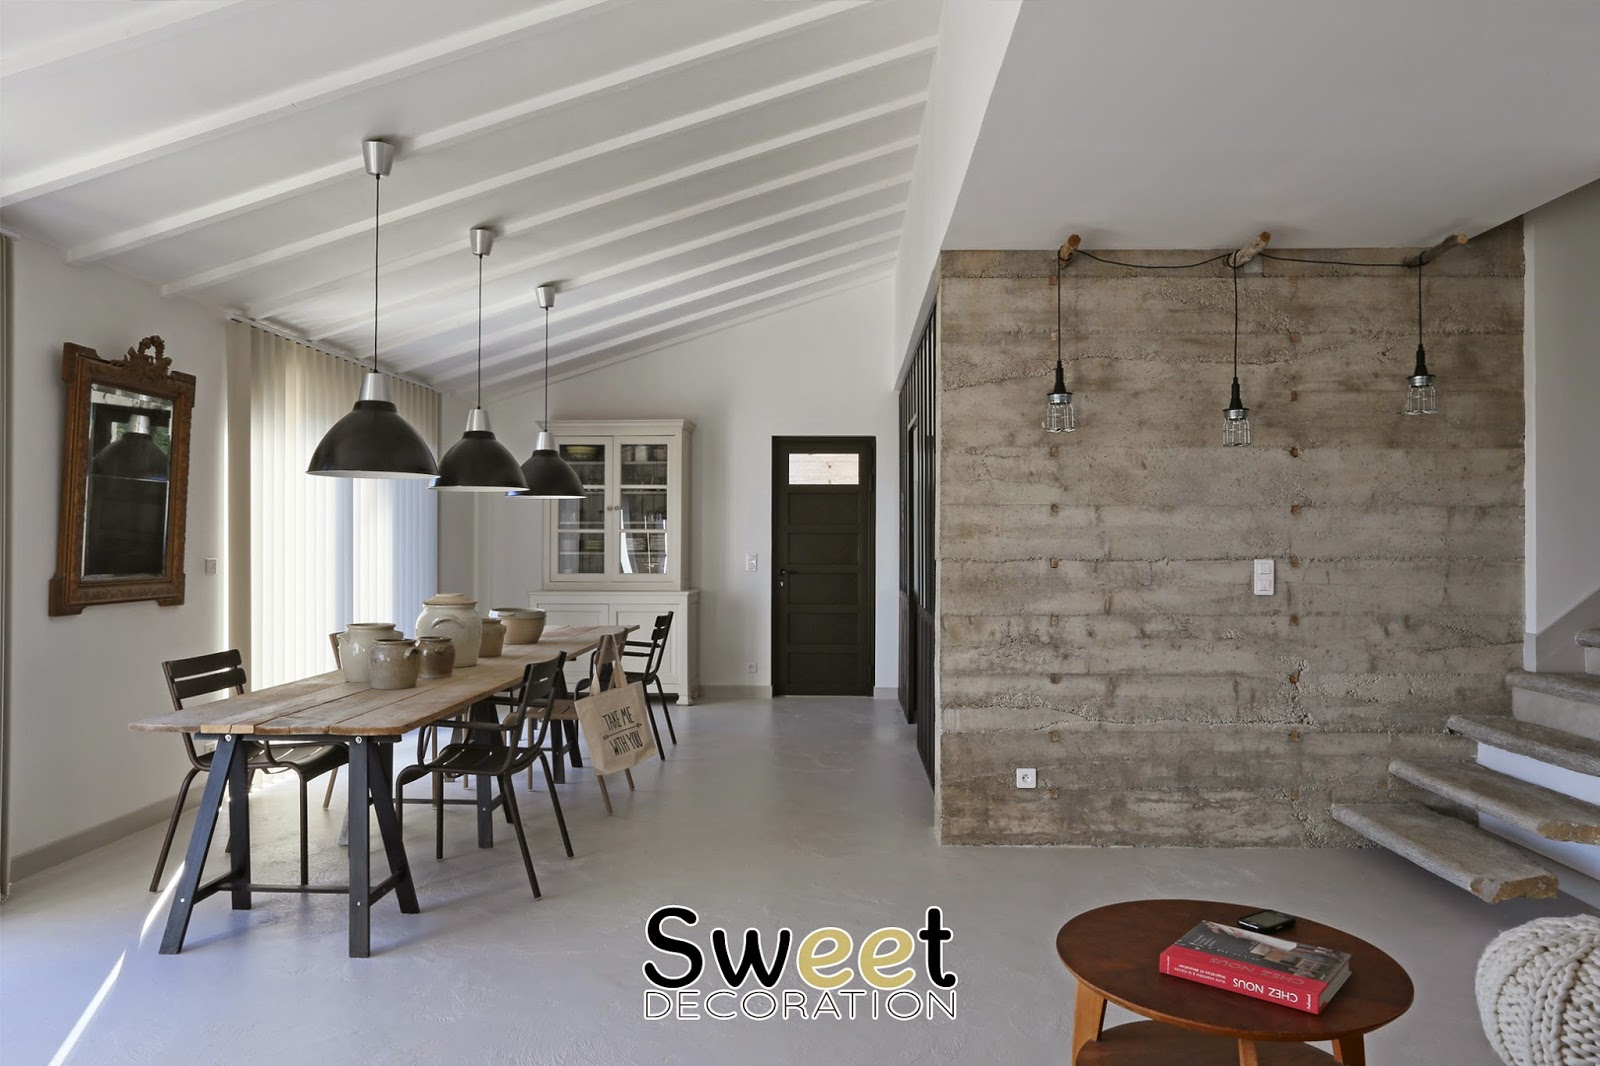 Am nagement int rieur d 39 une maison contemporaine sweet d coration - Amenagement interieur maison contemporaine ...